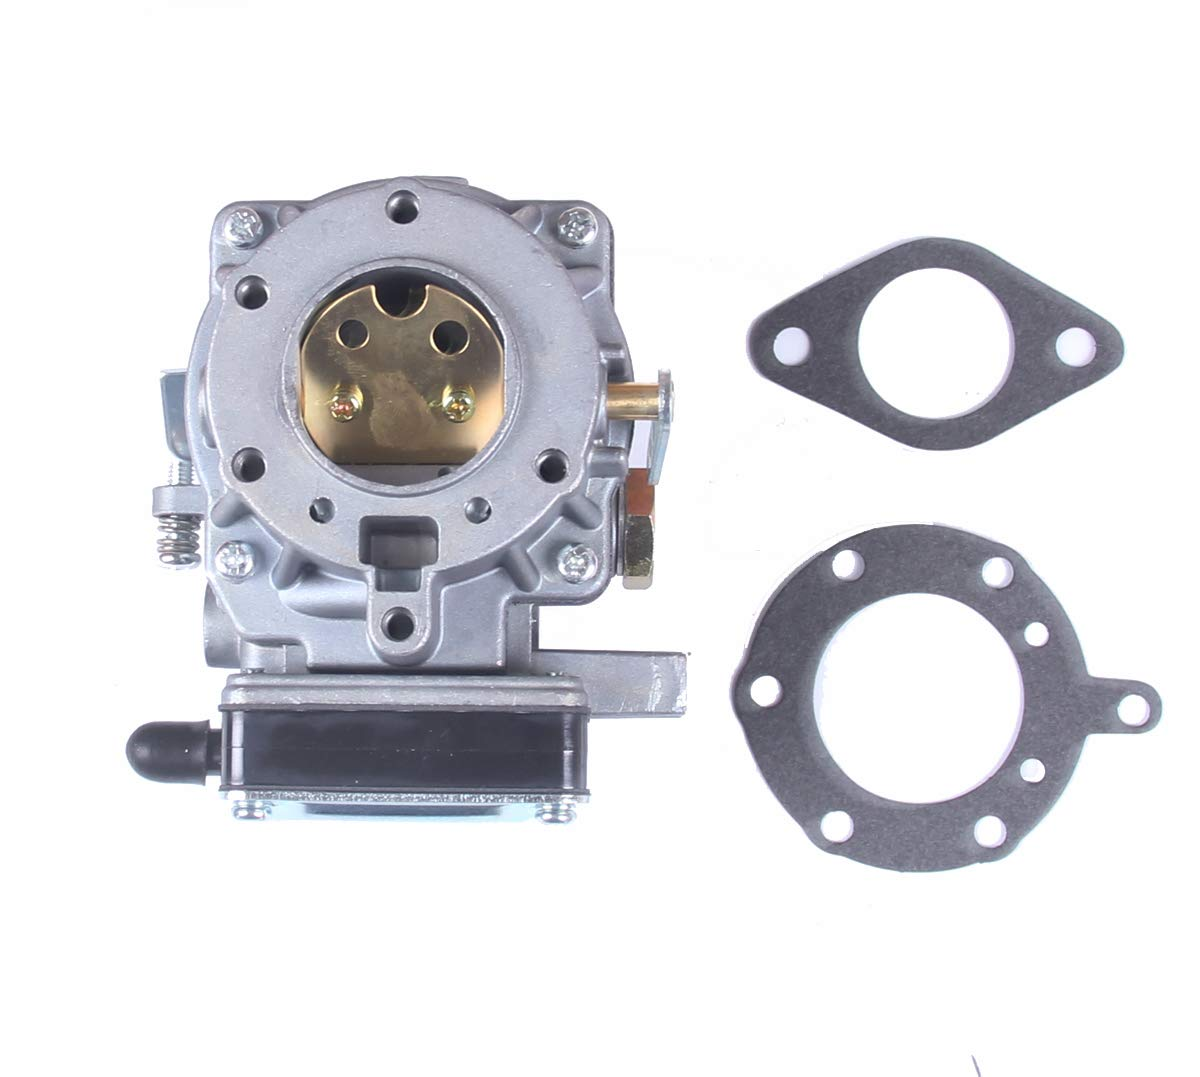 Goodbest New Carburetor for Briggs & Stratton 693479 Replace 499305 499307 498774 by Goodbest